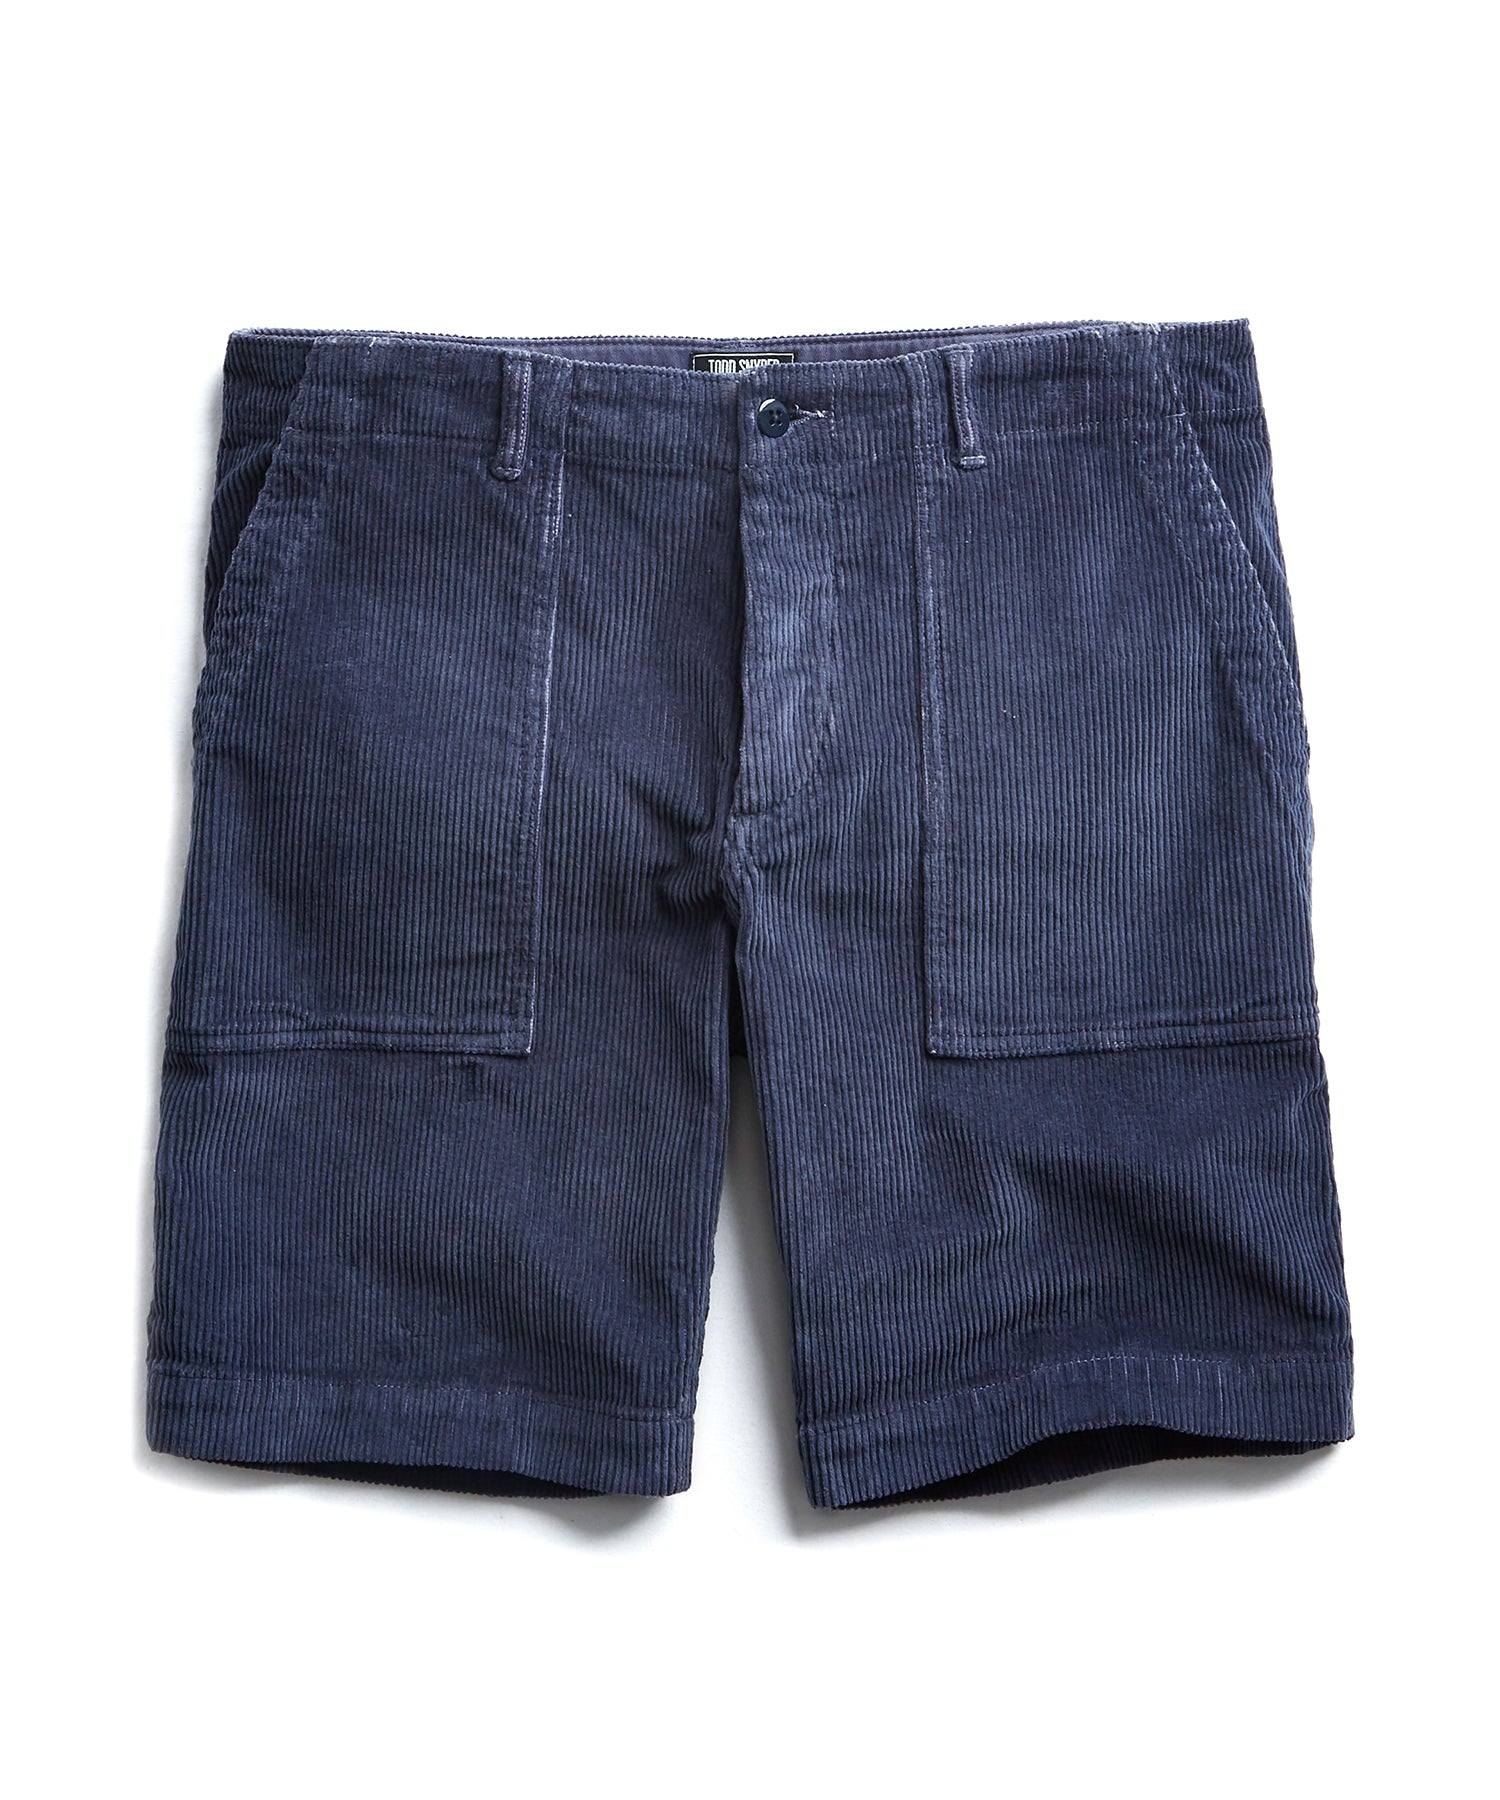 "9"" Stretch Italian Corduroy Camp Short in Navy"